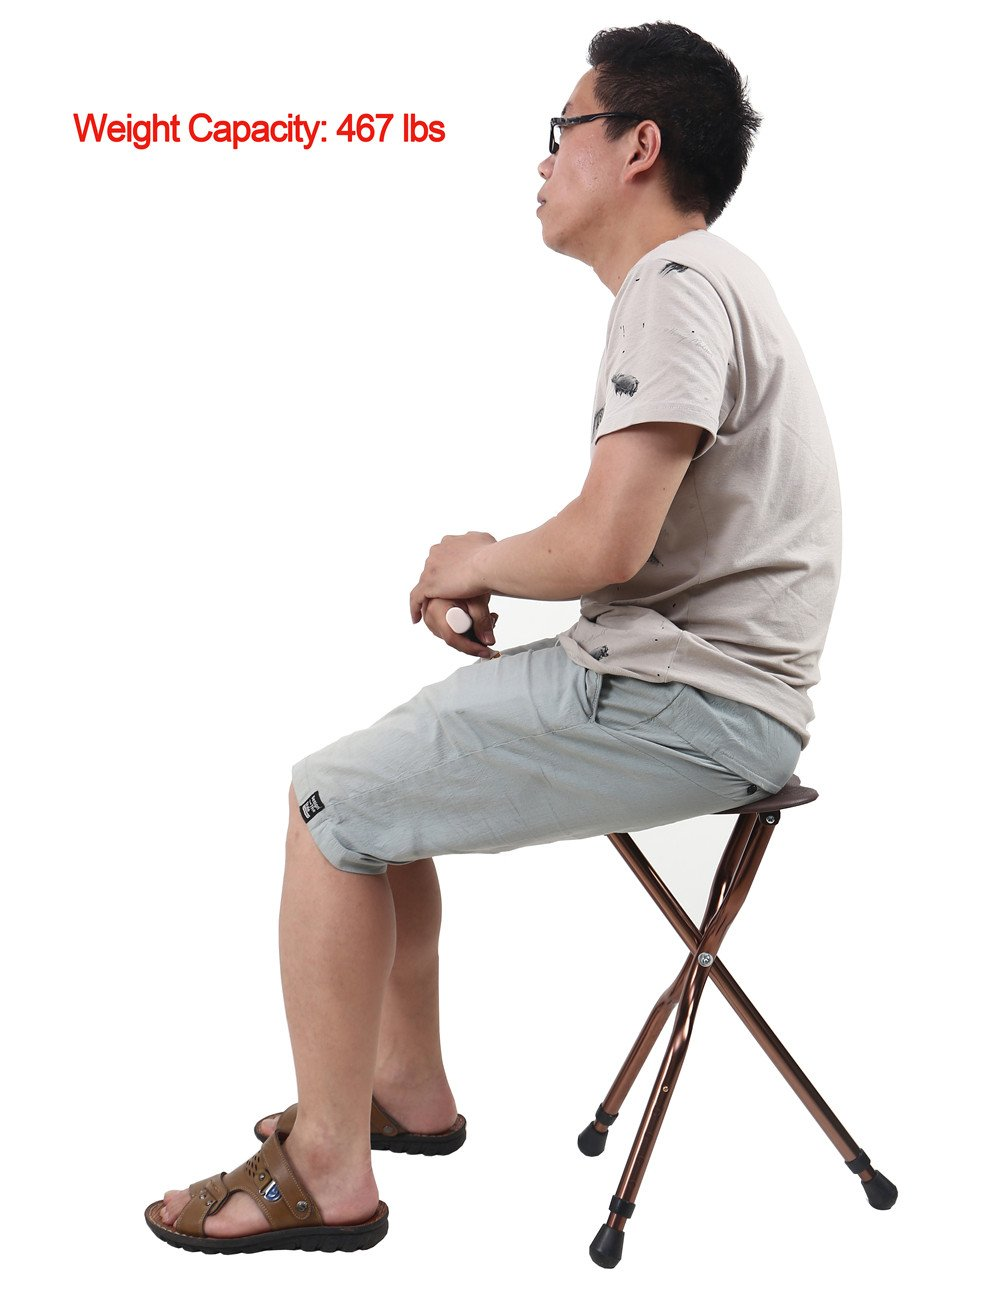 Best Health Cane Seat Stool Retractable Lightweight Walking Stick with LED Light for Elderly Outdoor Travel Rest Stool Folding Chair Replacement Large Golf Seat Large Weight Capacity (brown cane seat) by BSROZKI (Image #2)